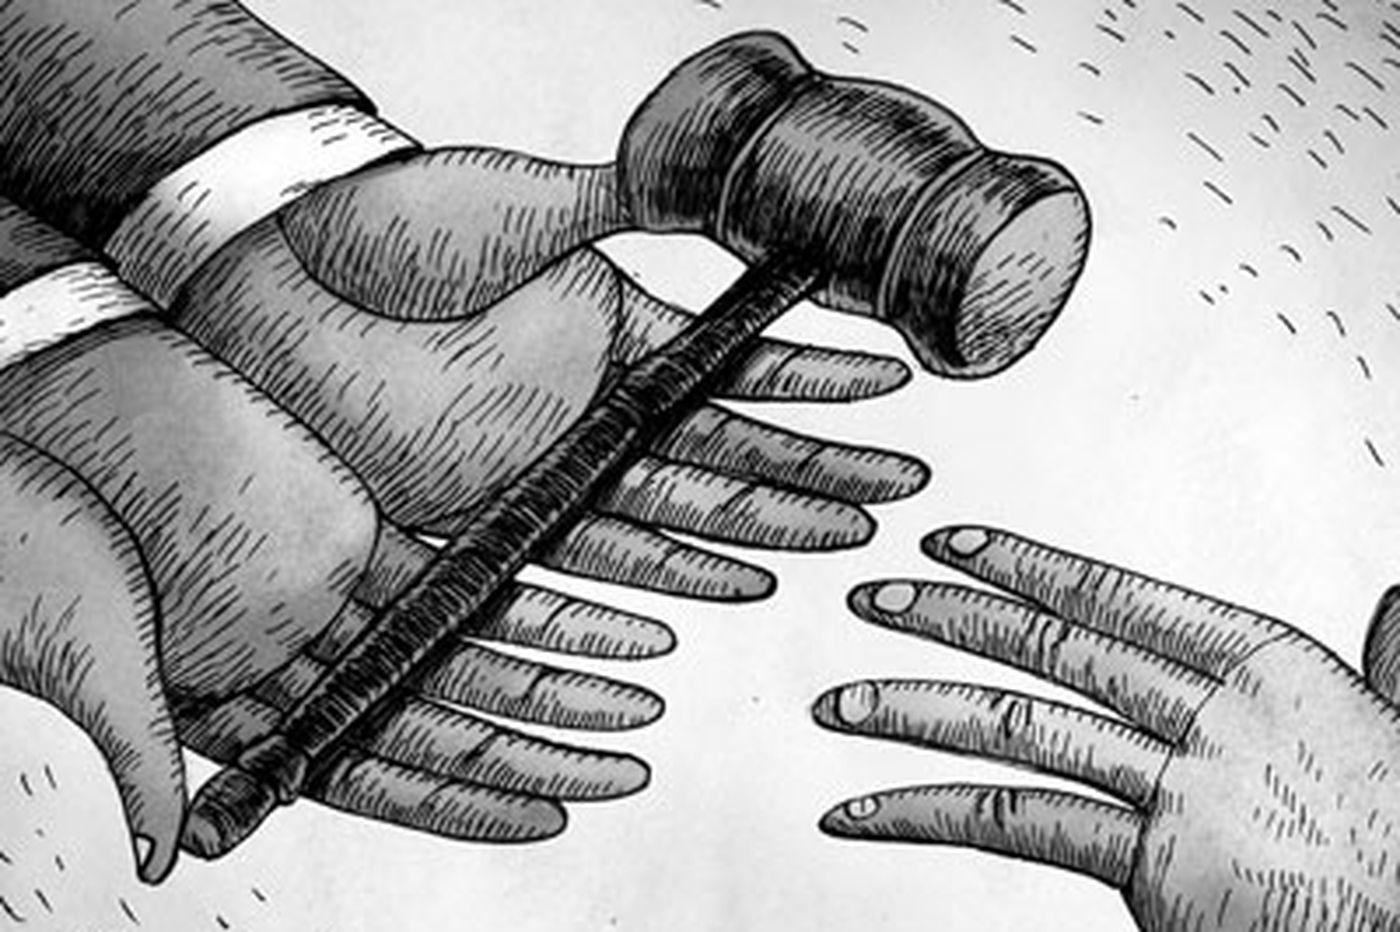 Inquirer Editorial: At least agree on judges